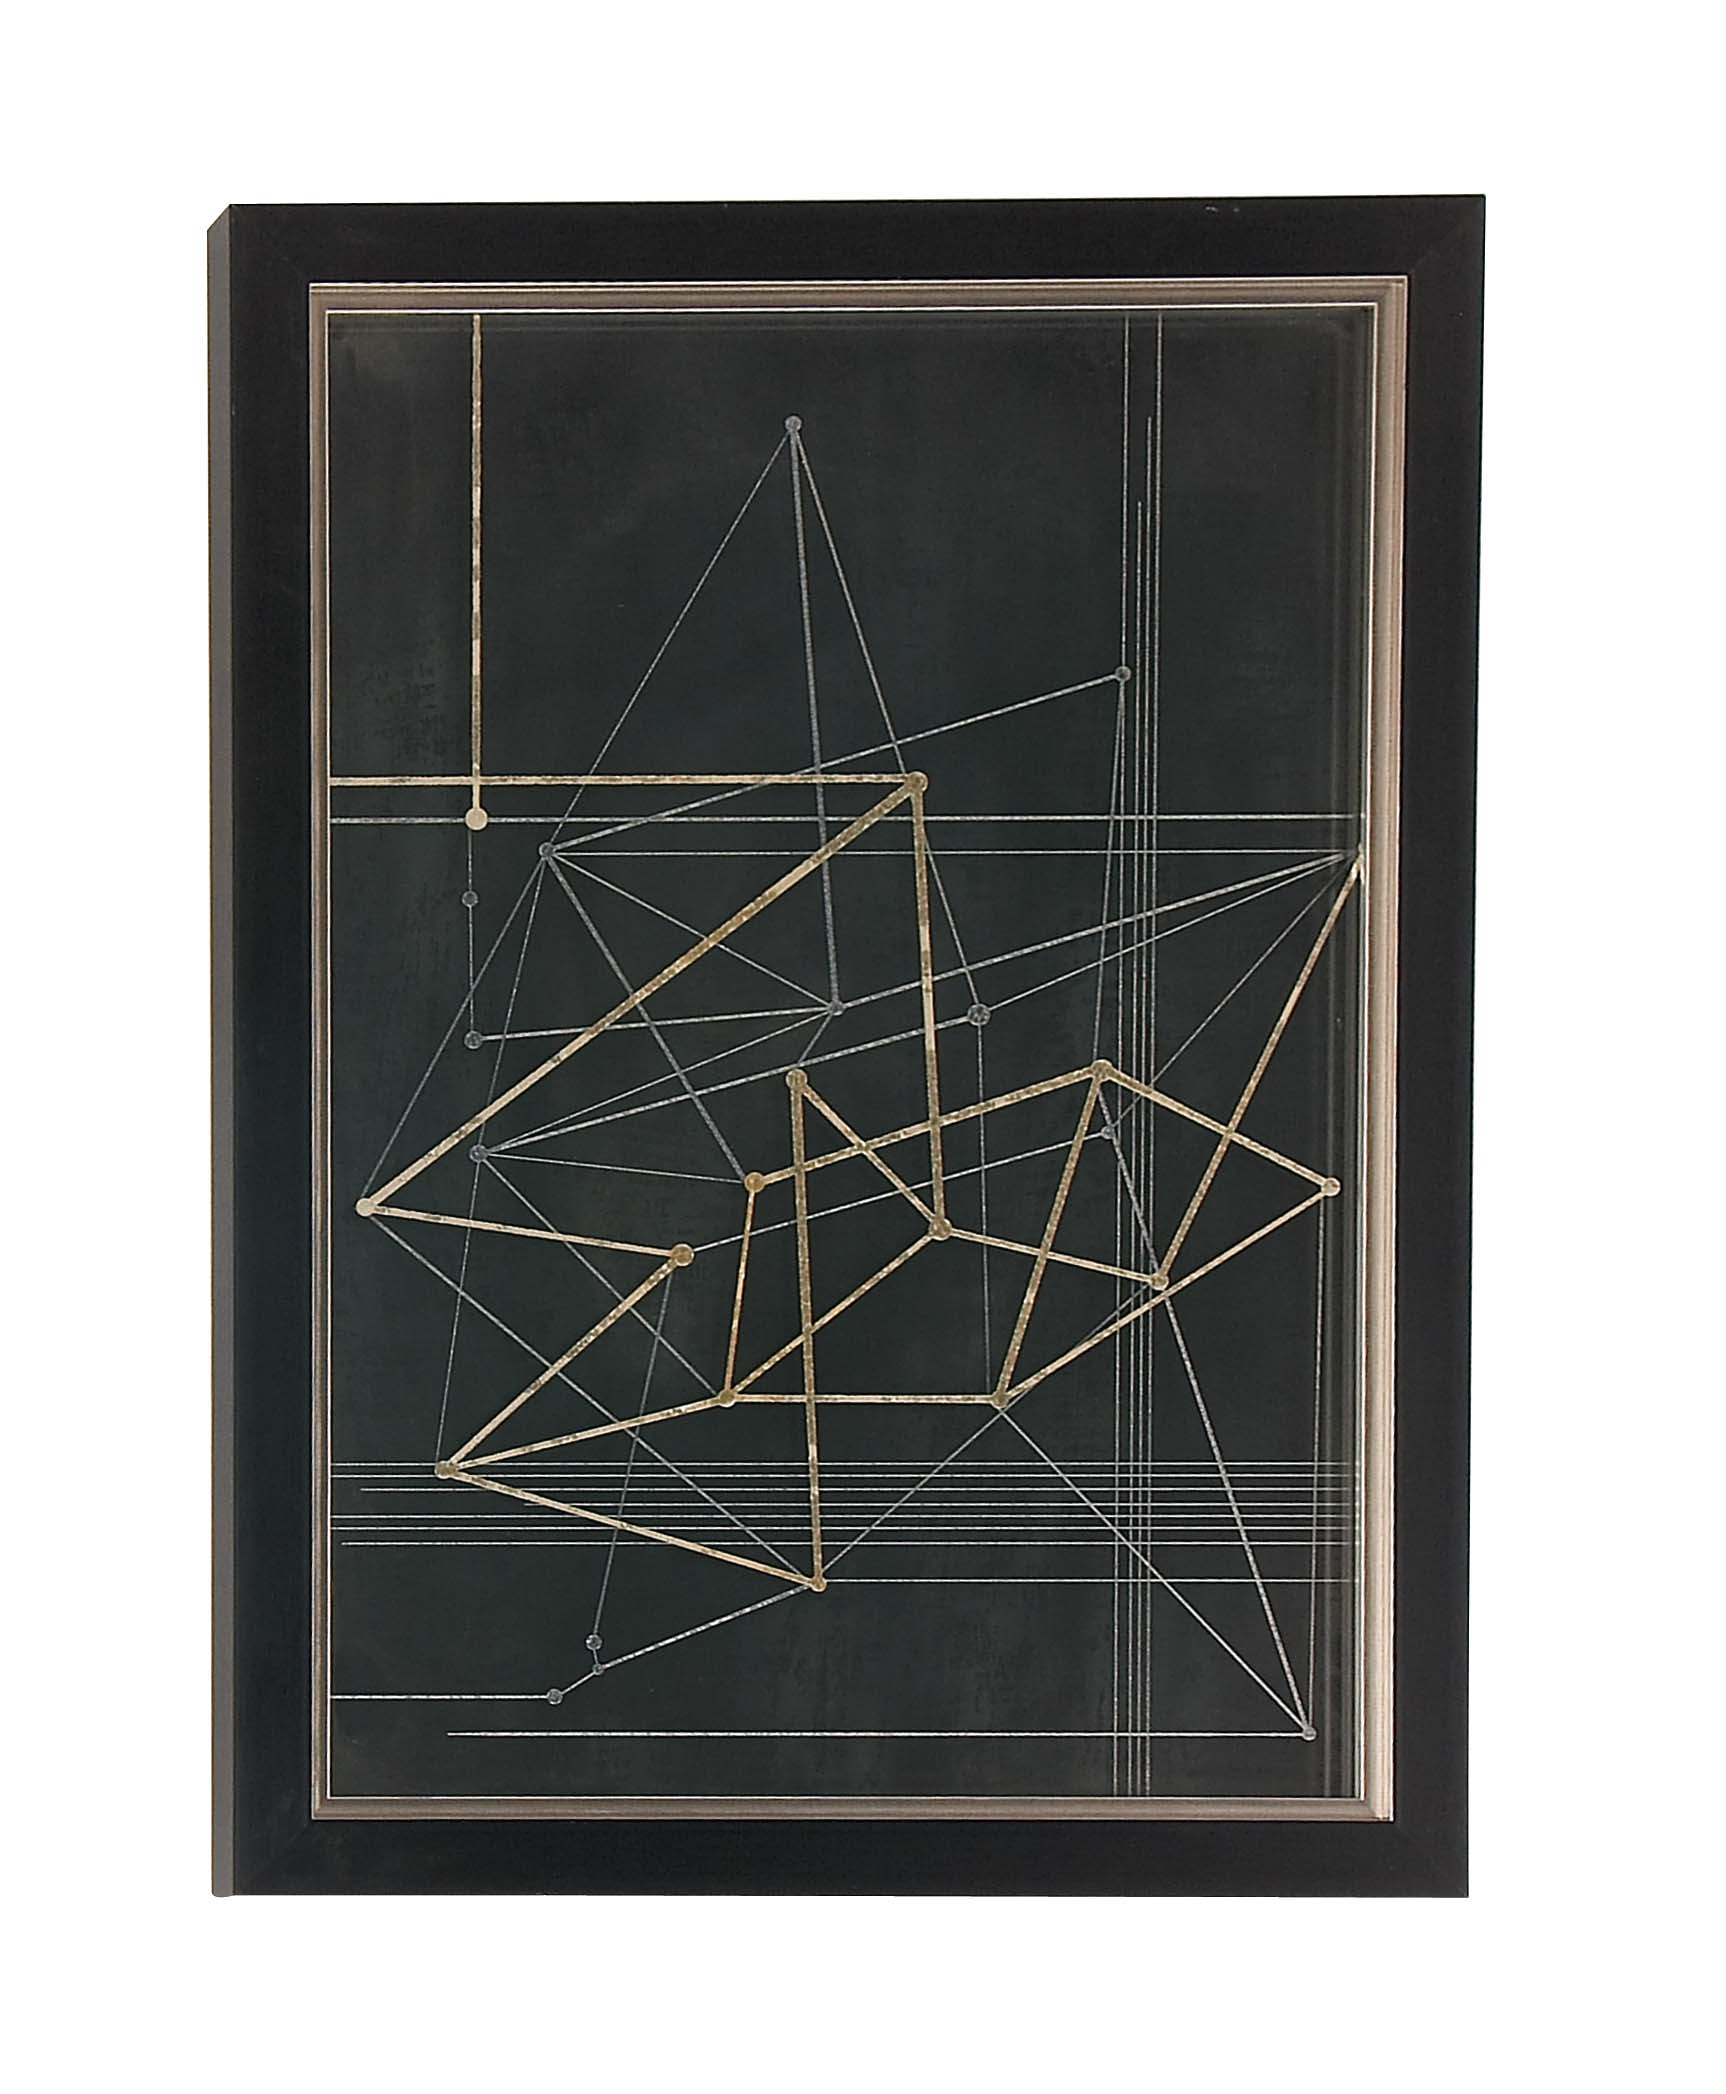 Decmode Contemporary Wood and Polystone Triangles and Lines Framed Wall Artwork, Black by DecMode